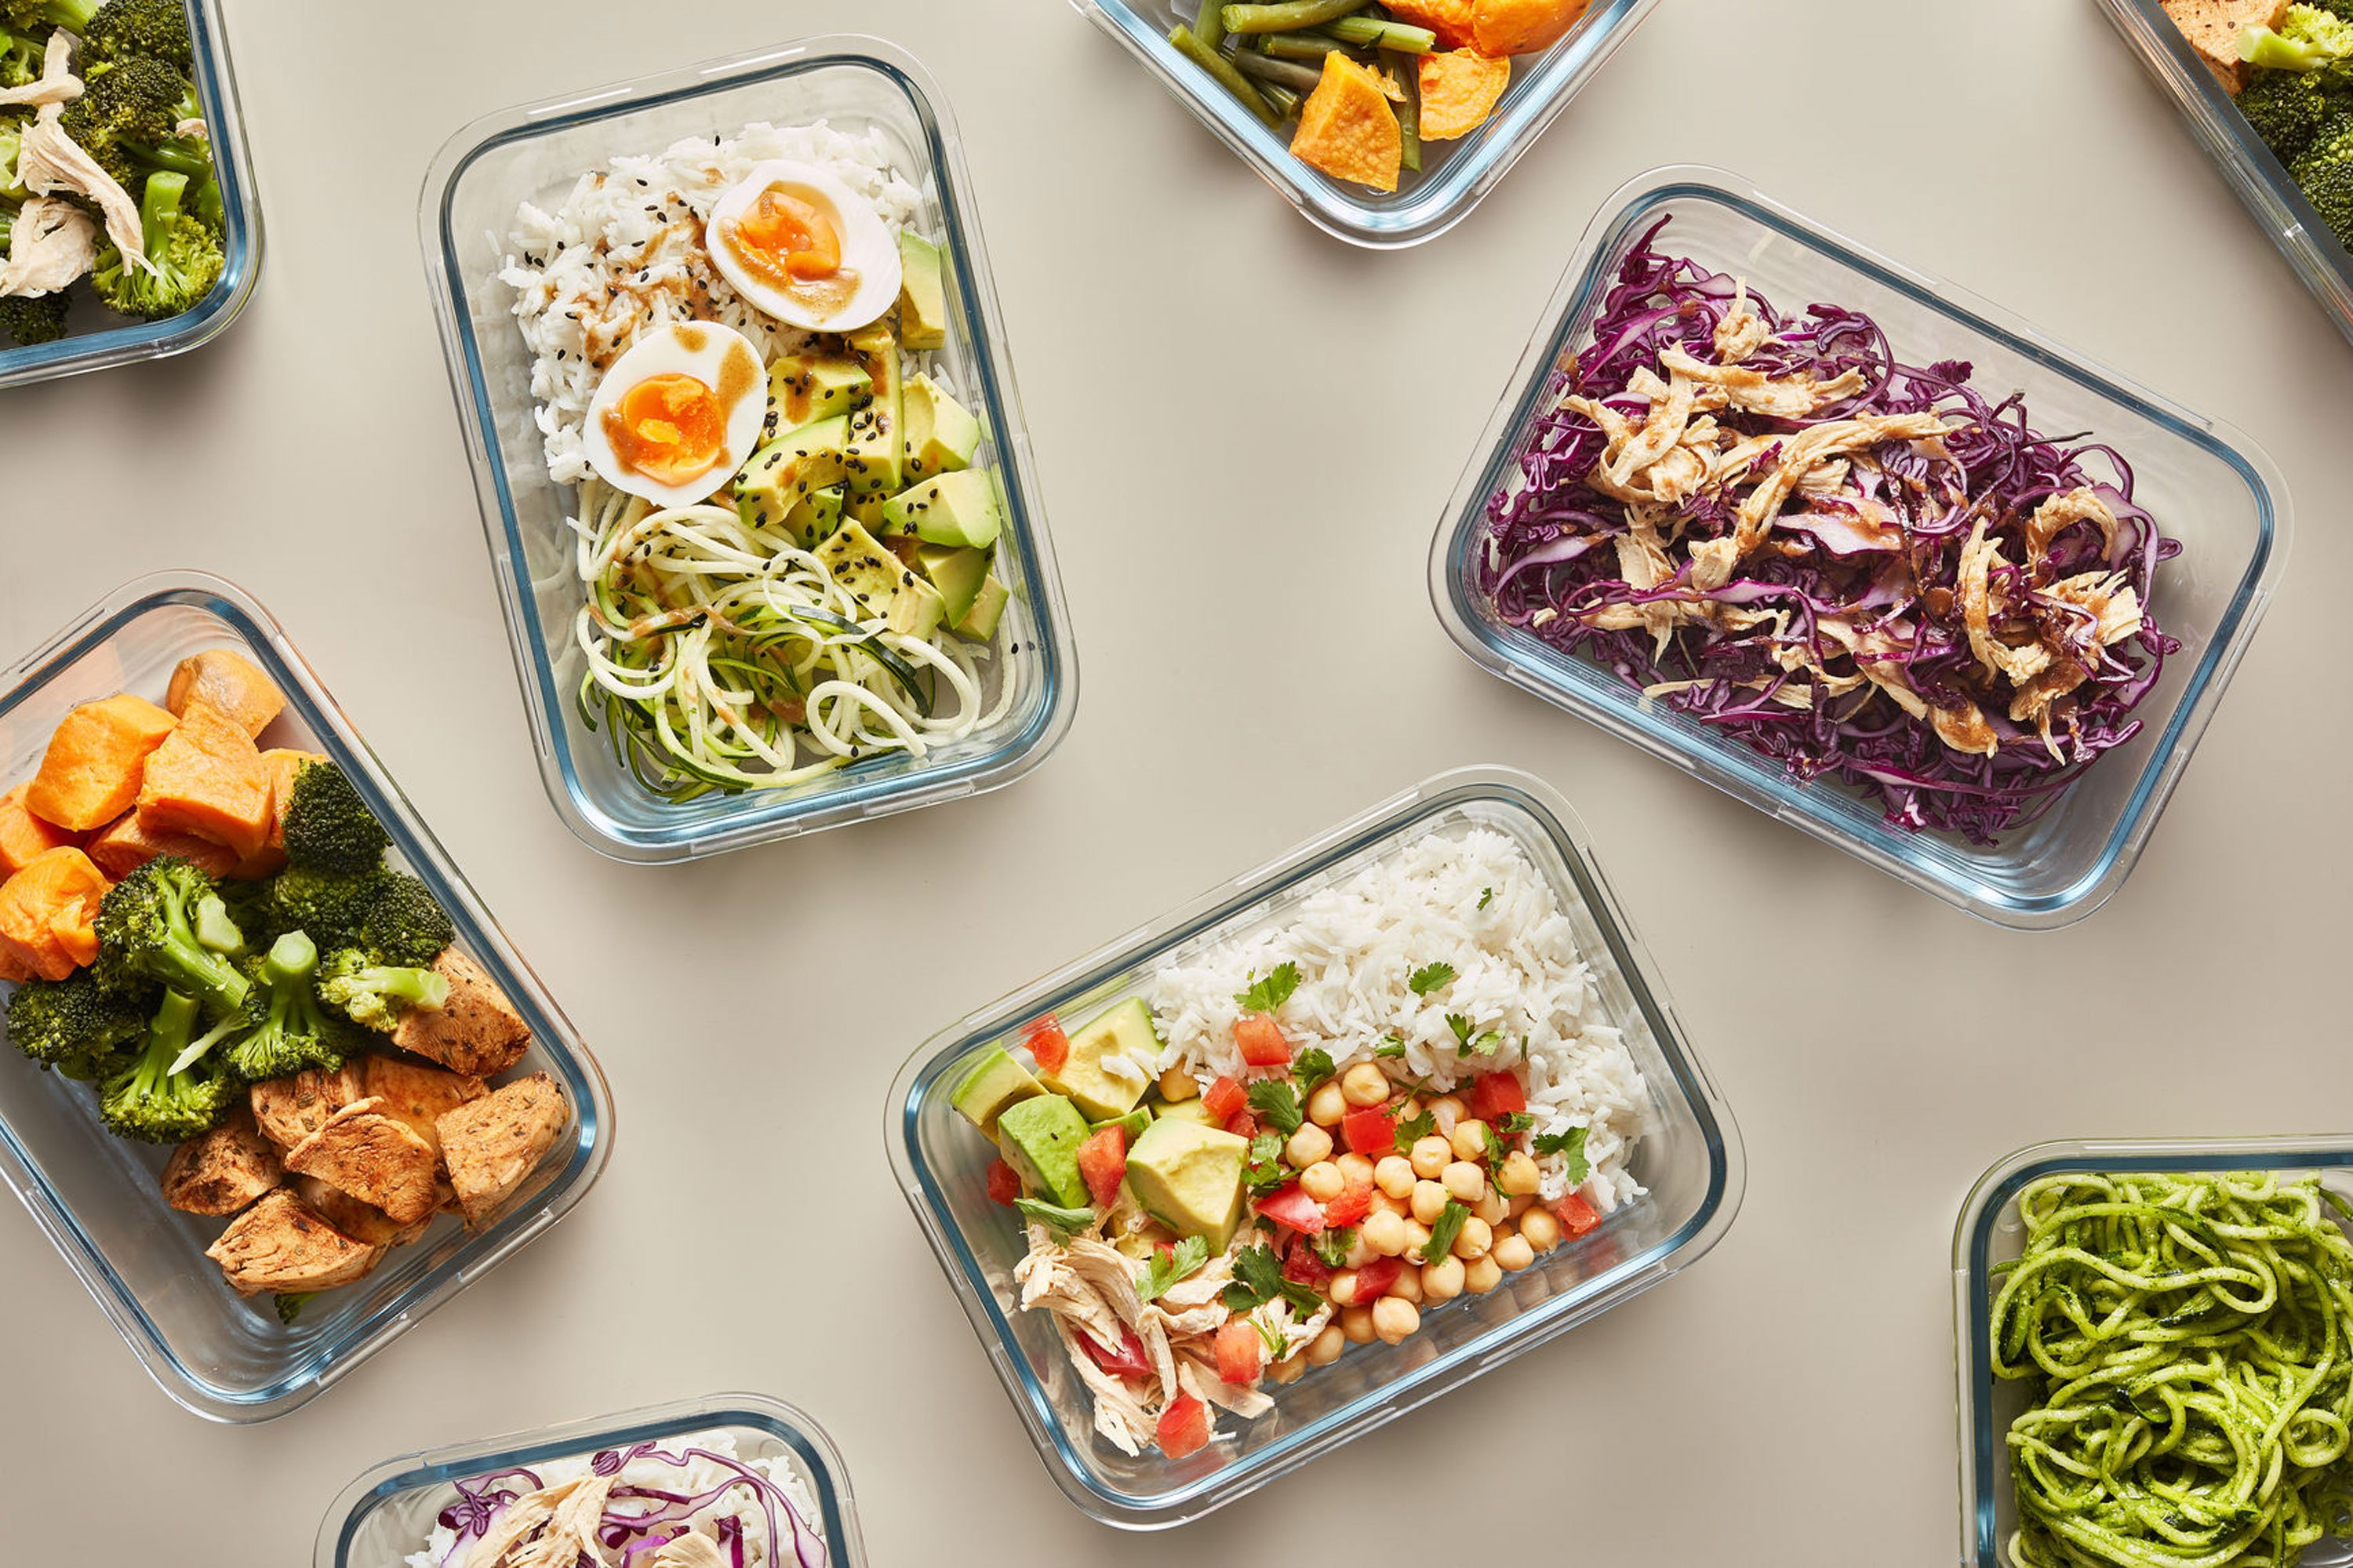 Ready to Start Meal Prepping? Here's Everything You Need to Know